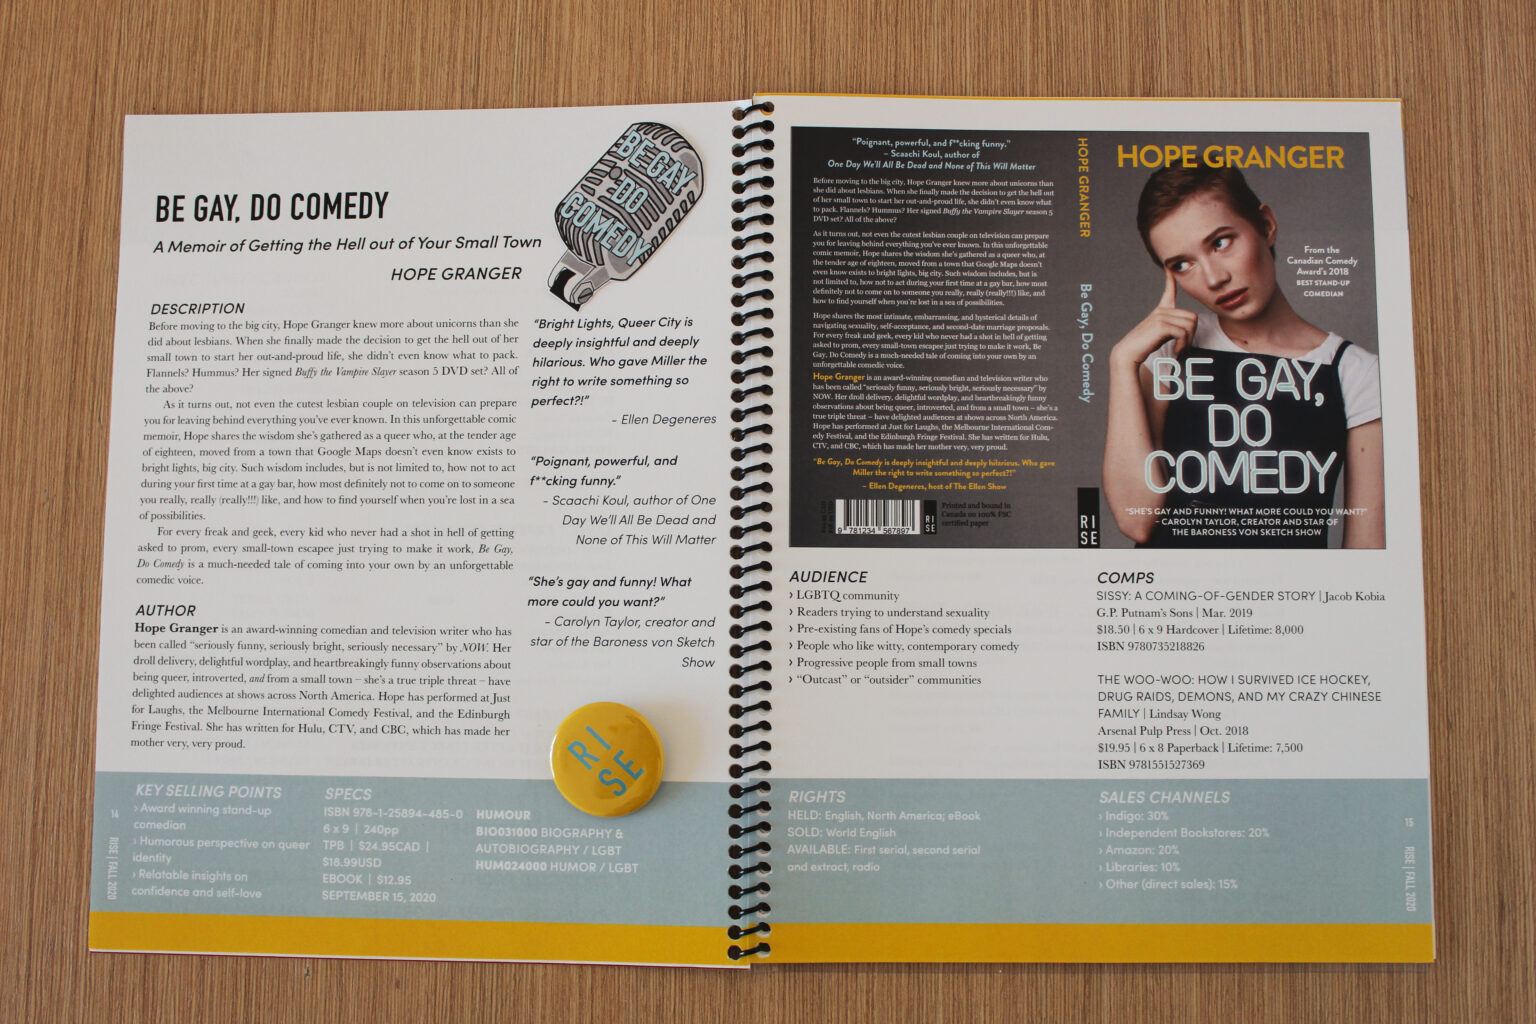 RISE project materials – Be Gay Do Comedy tip sheet spread